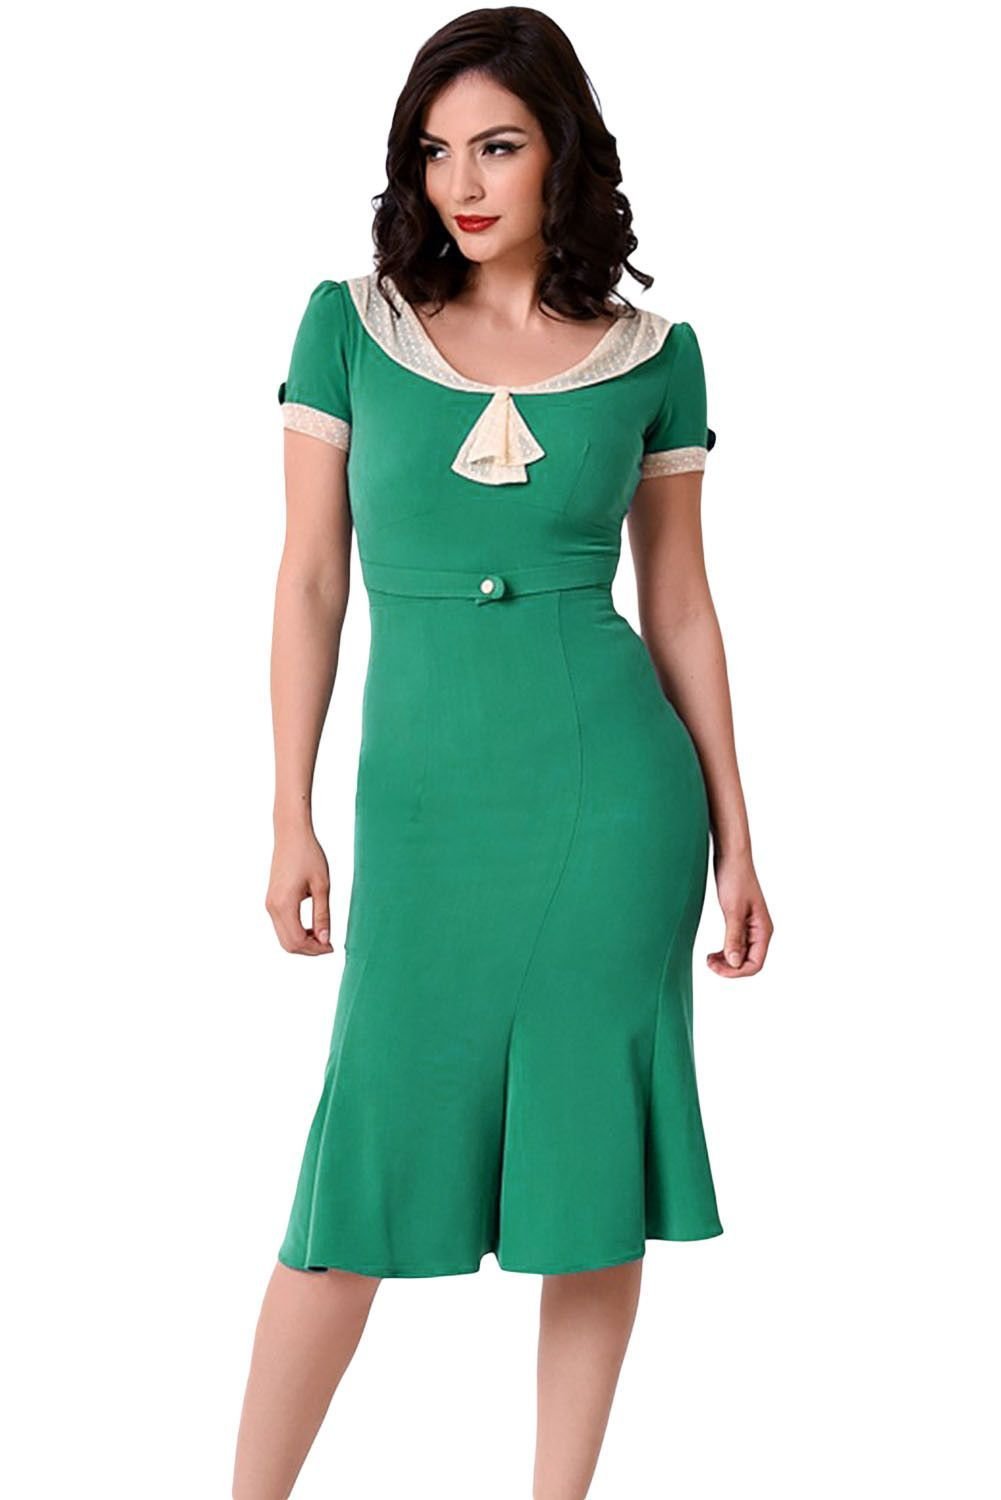 Stop Staring Green Ivory Vintage Party Dress | vintage Party, Ivory ...